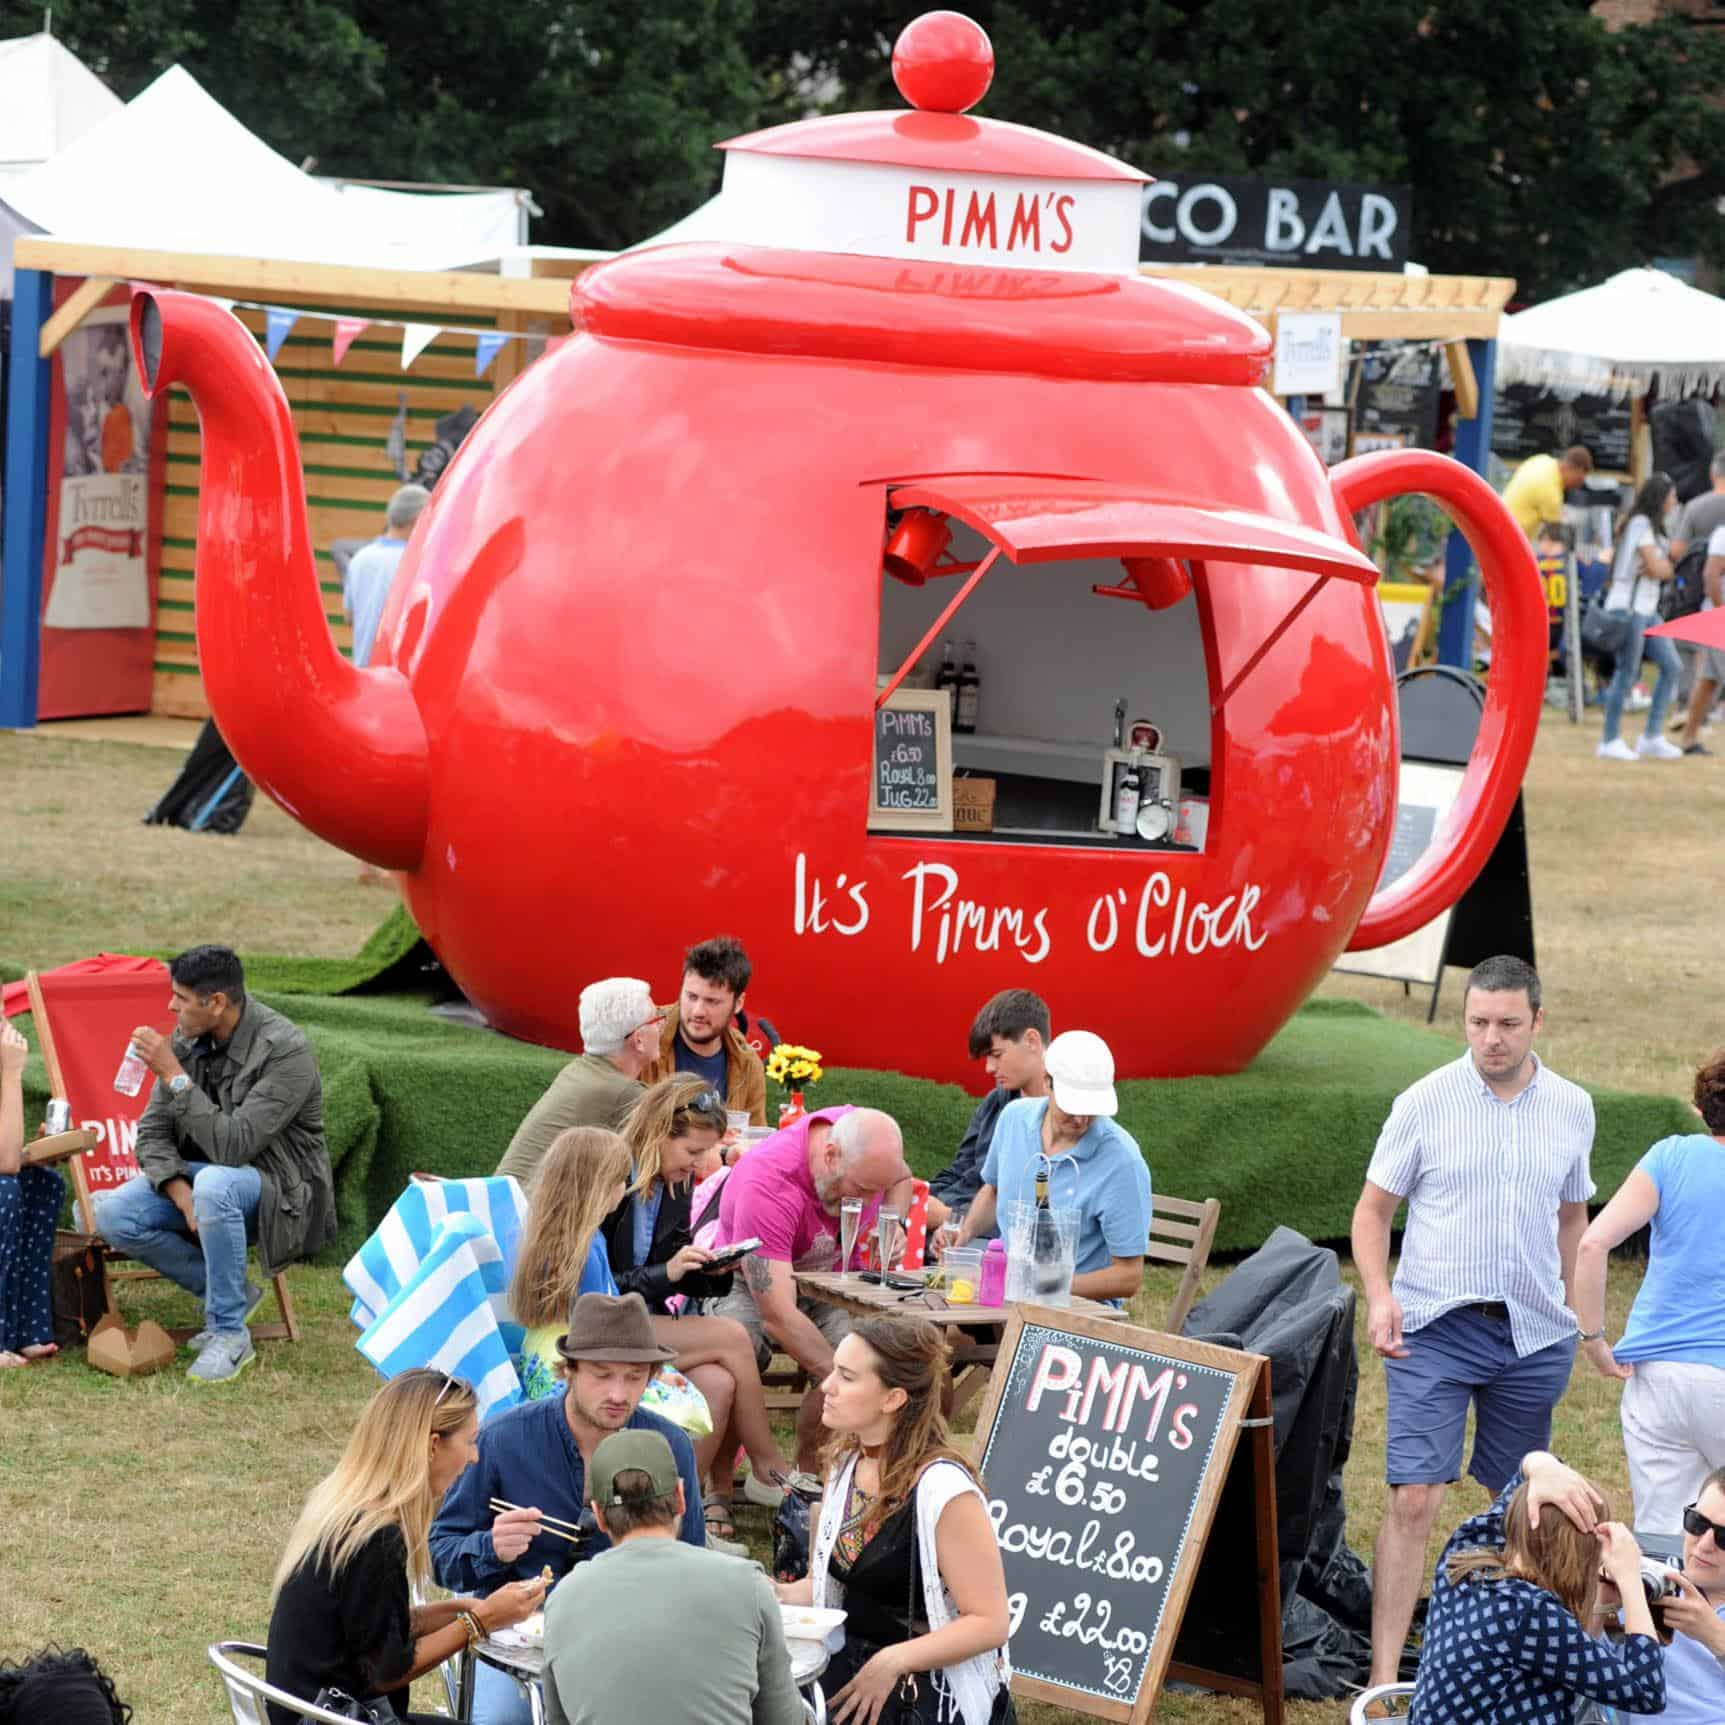 The Best Dog-friendly Festivals in London And Nearby - Foodies Festival London Syon Park